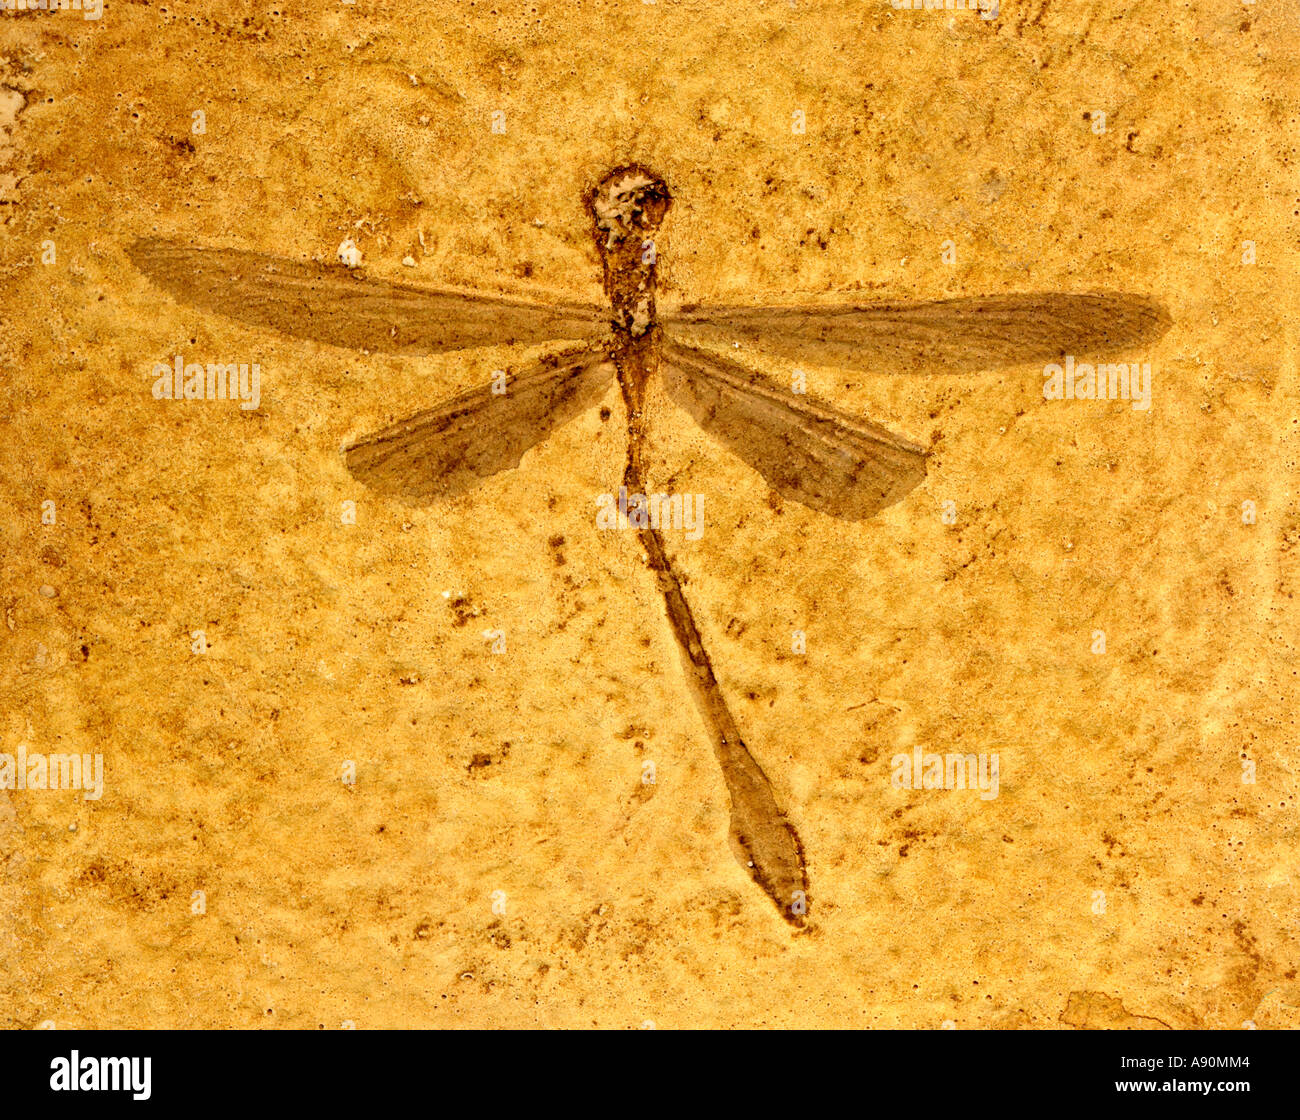 Fossil Dragonfly (Stenophlebia aequalis) 140 million years old.  Plaster cast - Stock Image